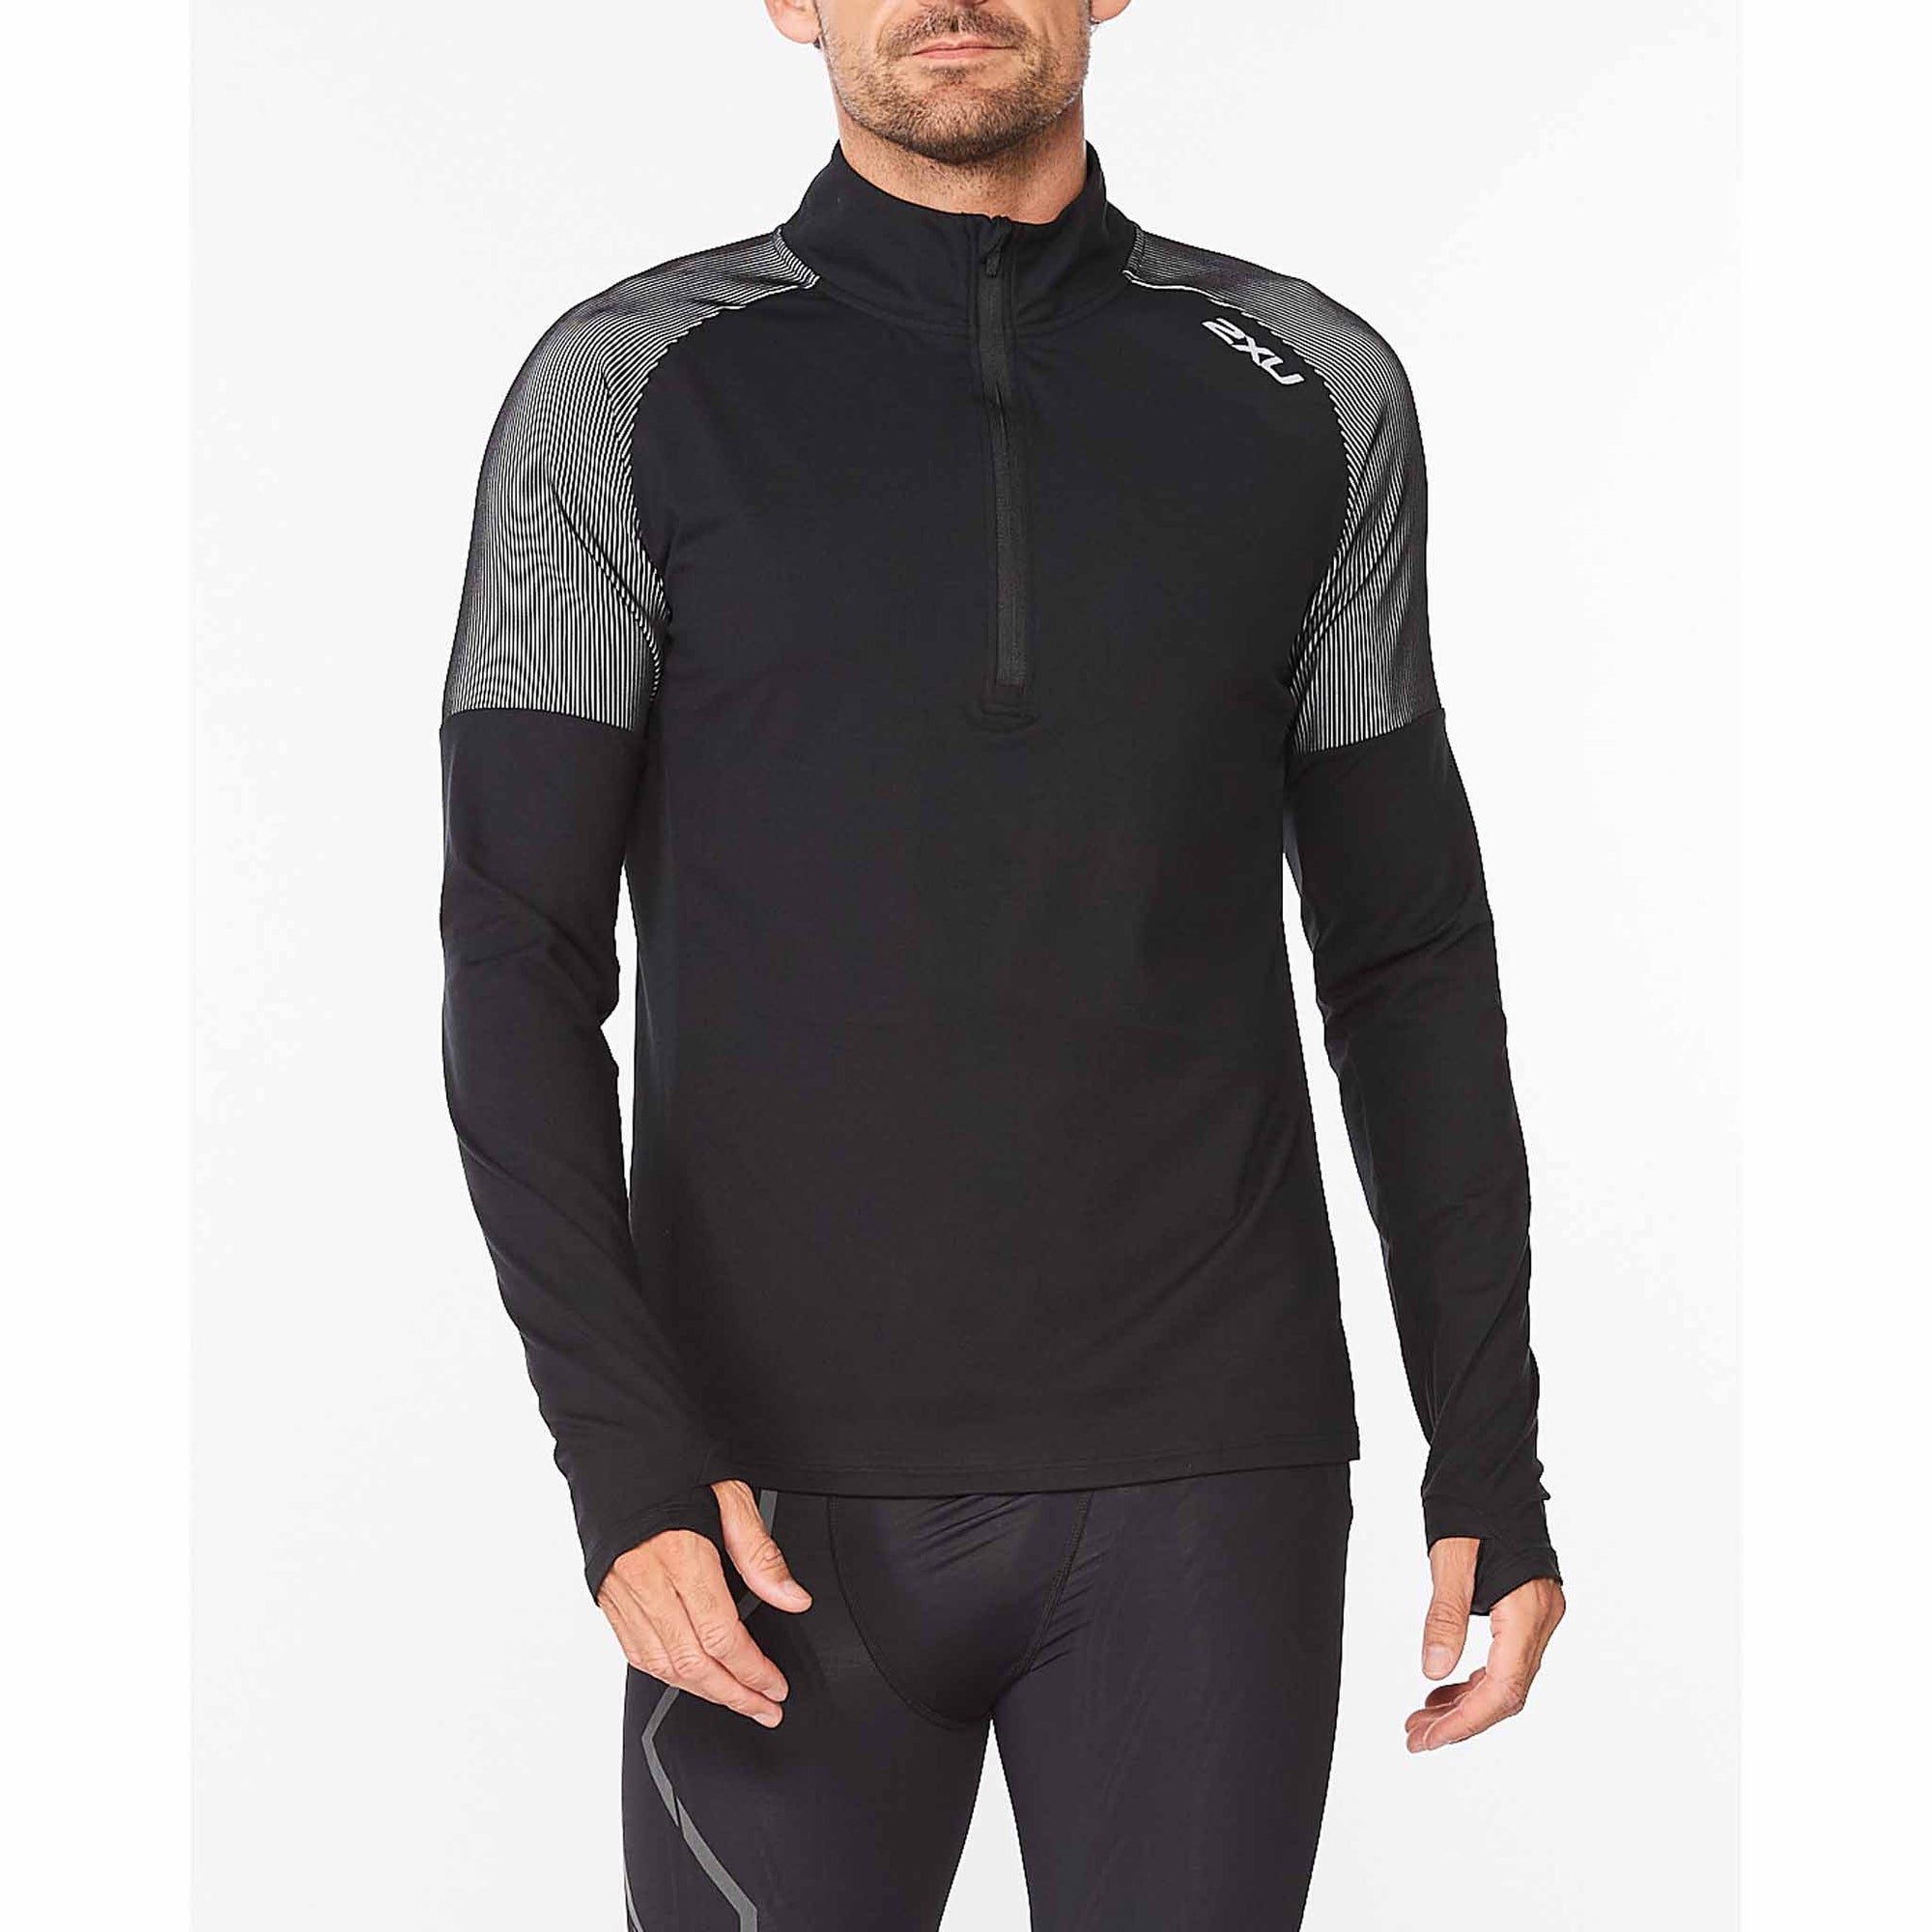 2XU Chandail manches longues Light Speed 1/2 Zip pour homme Black